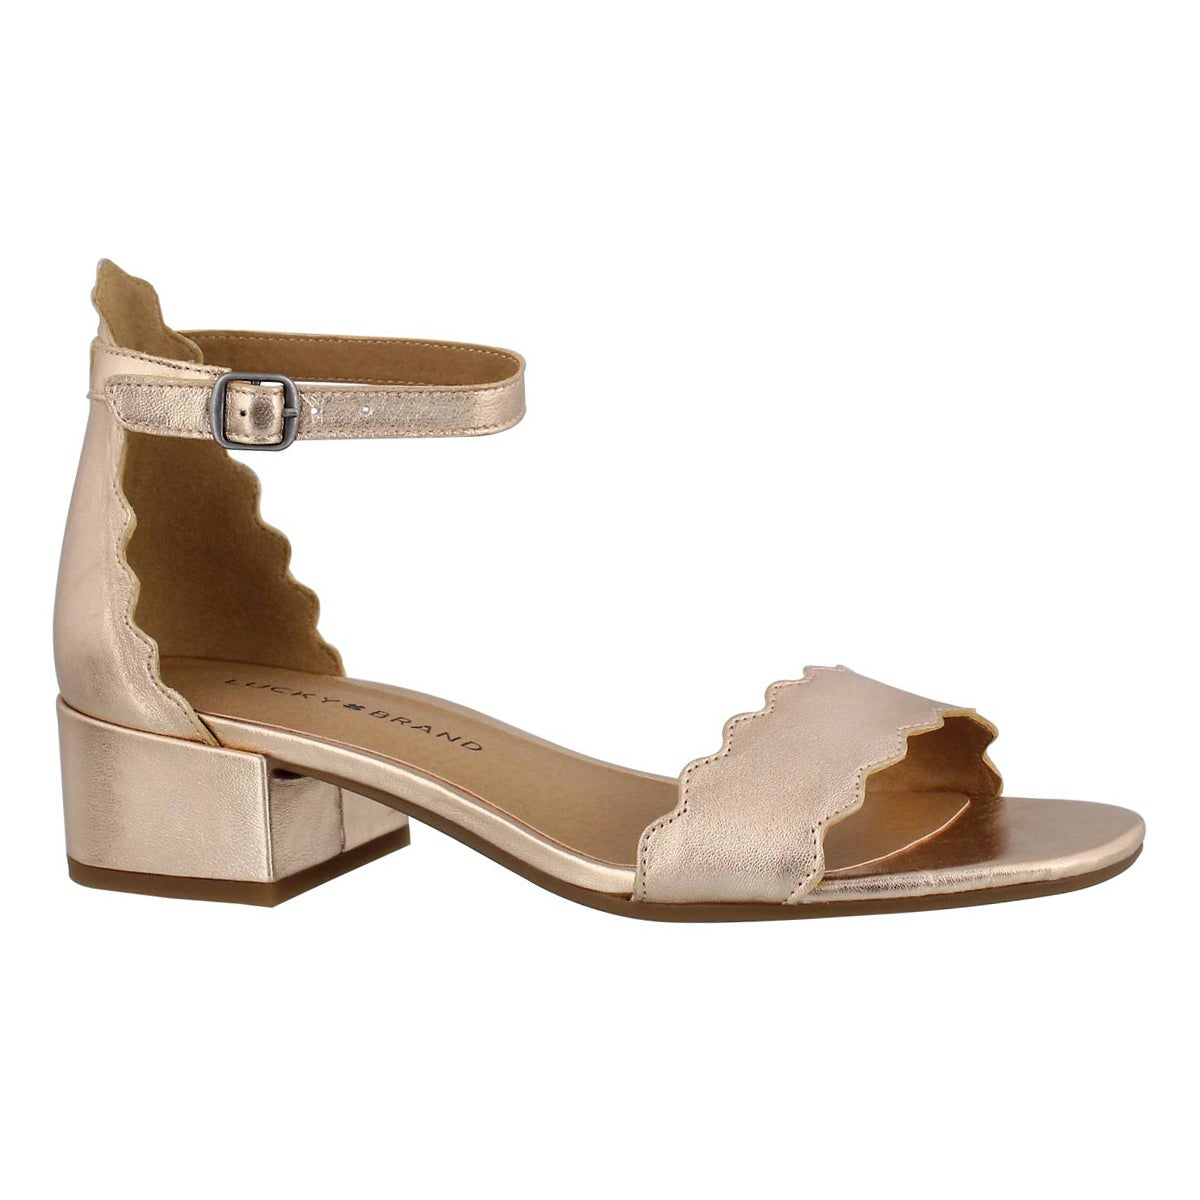 Lds Norreys pale rse gld dress sandal